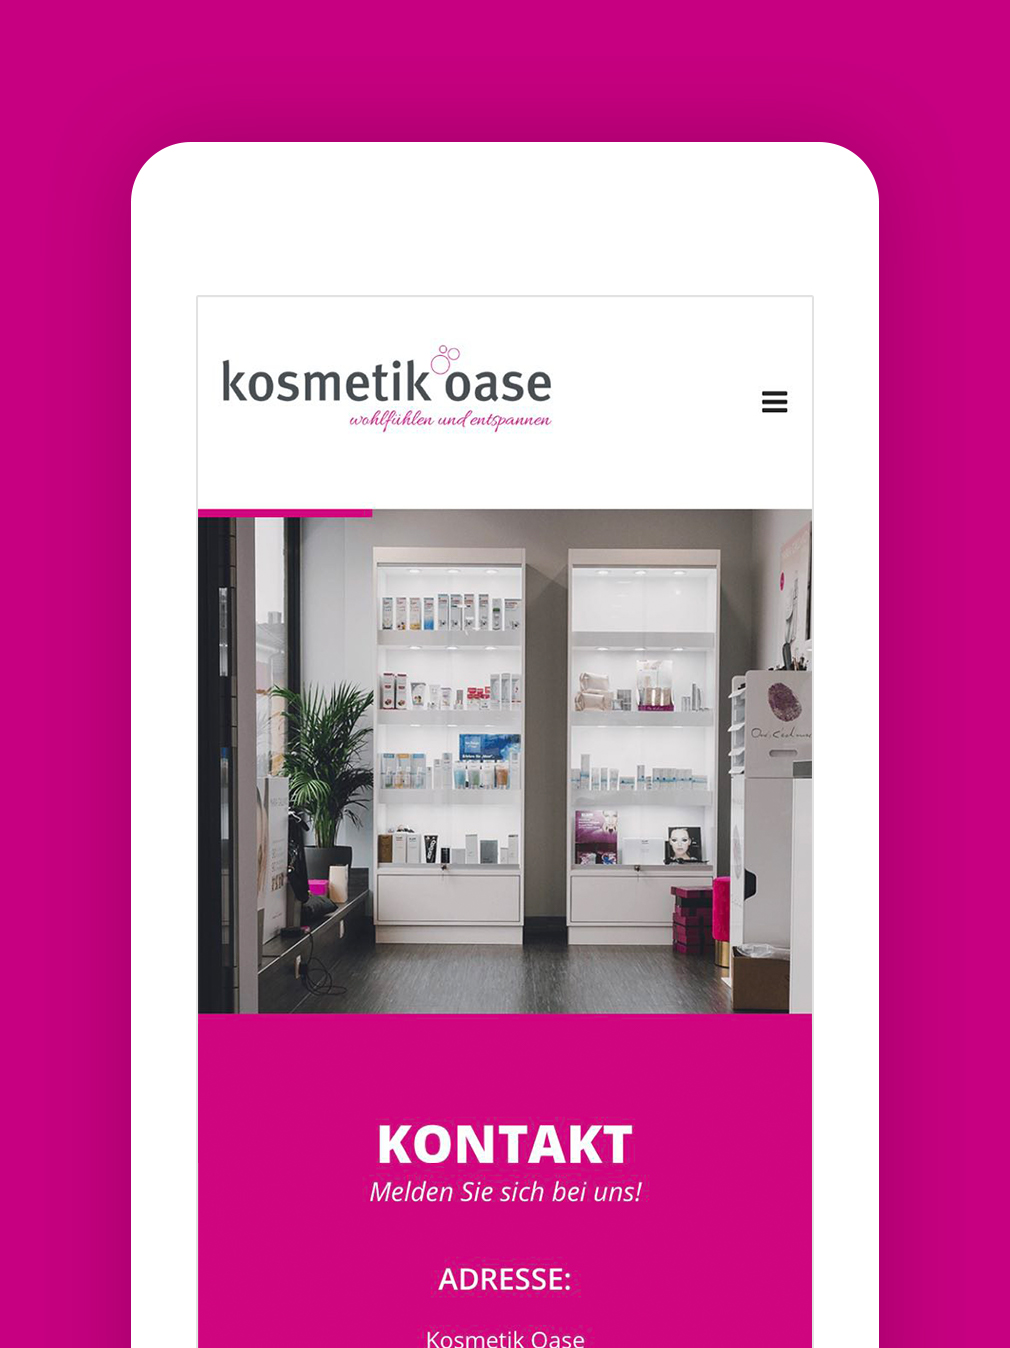 RIS Web- & Software Development - Projekt - Kosmetikoase Teublitz